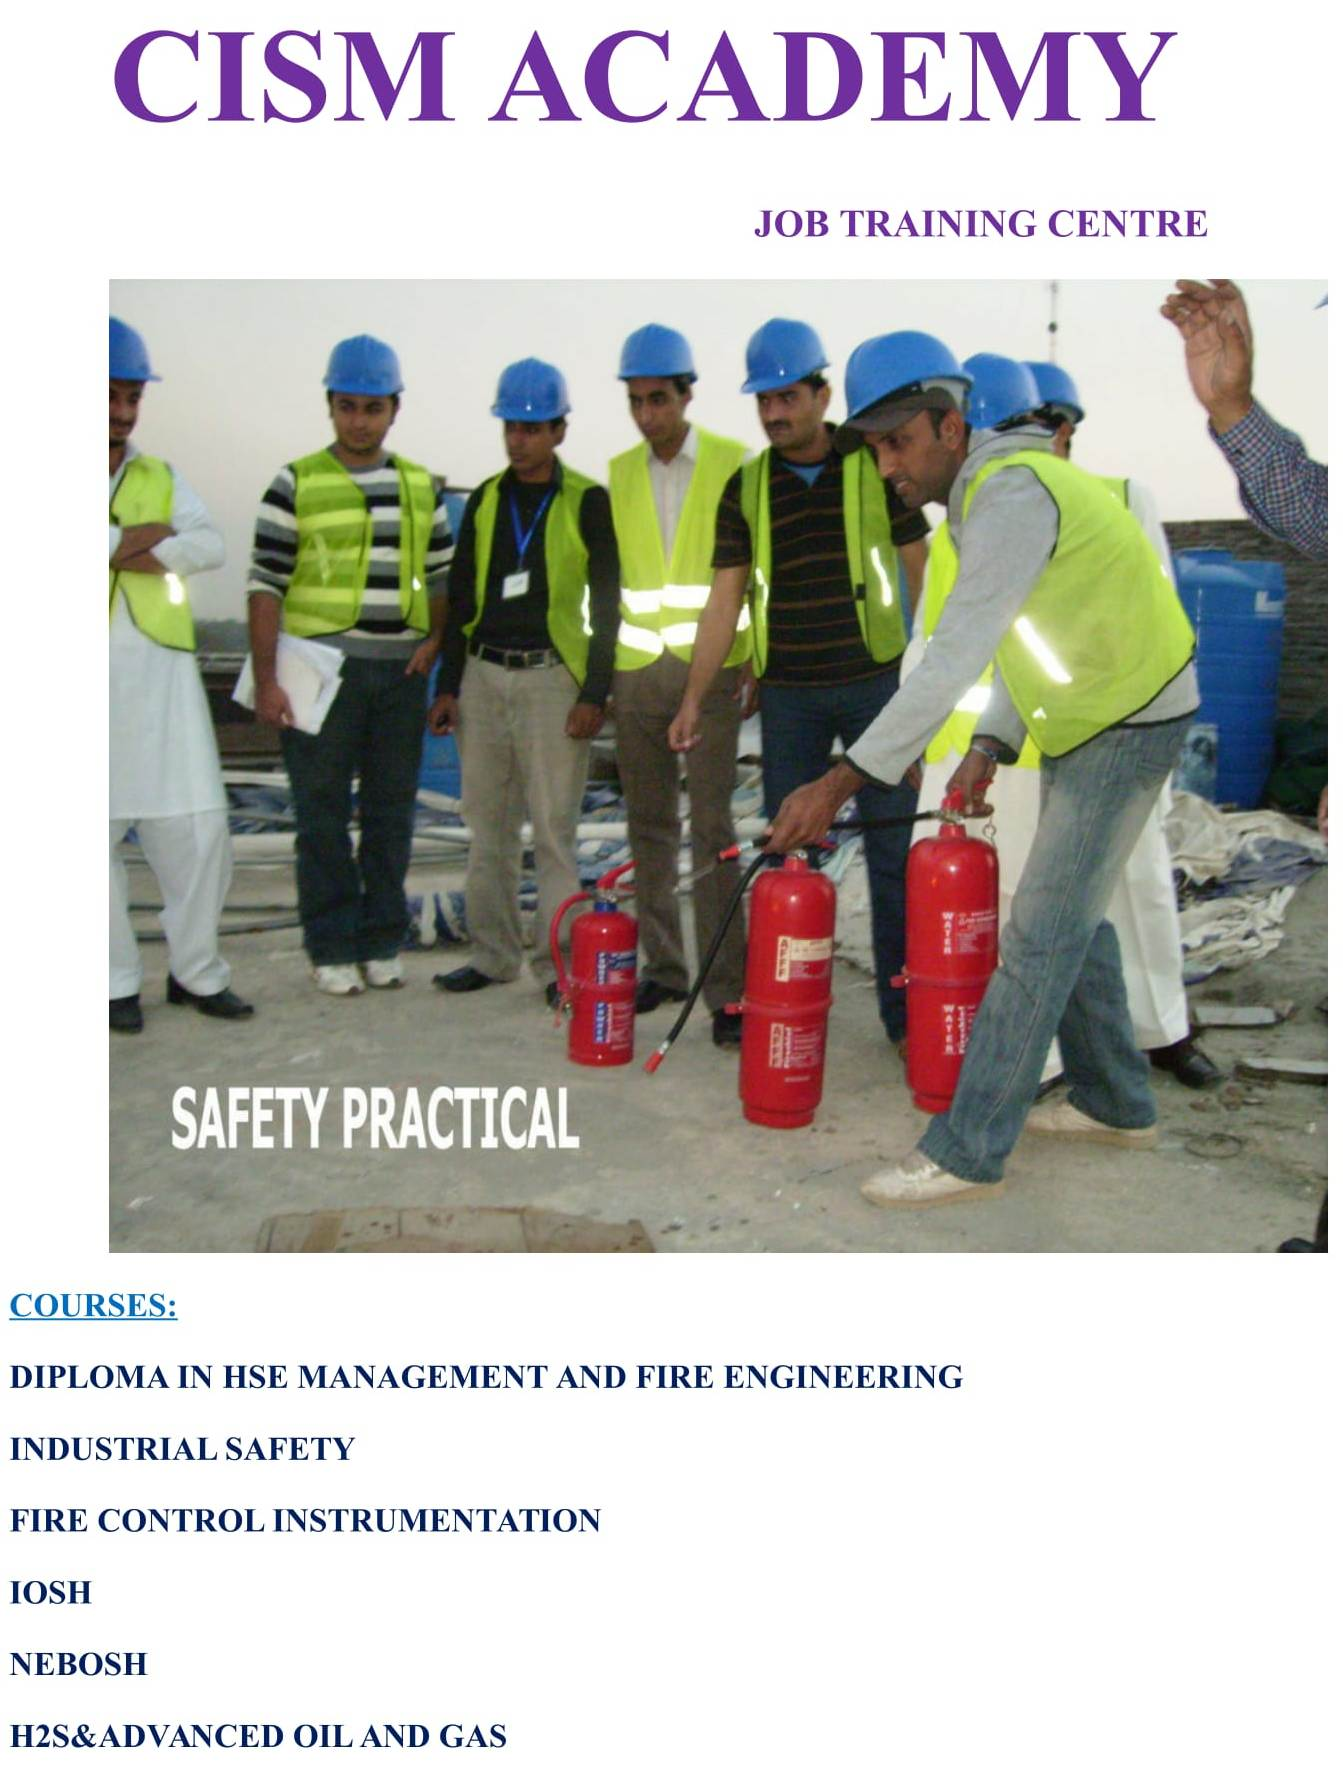 CISM Academy Safety Training